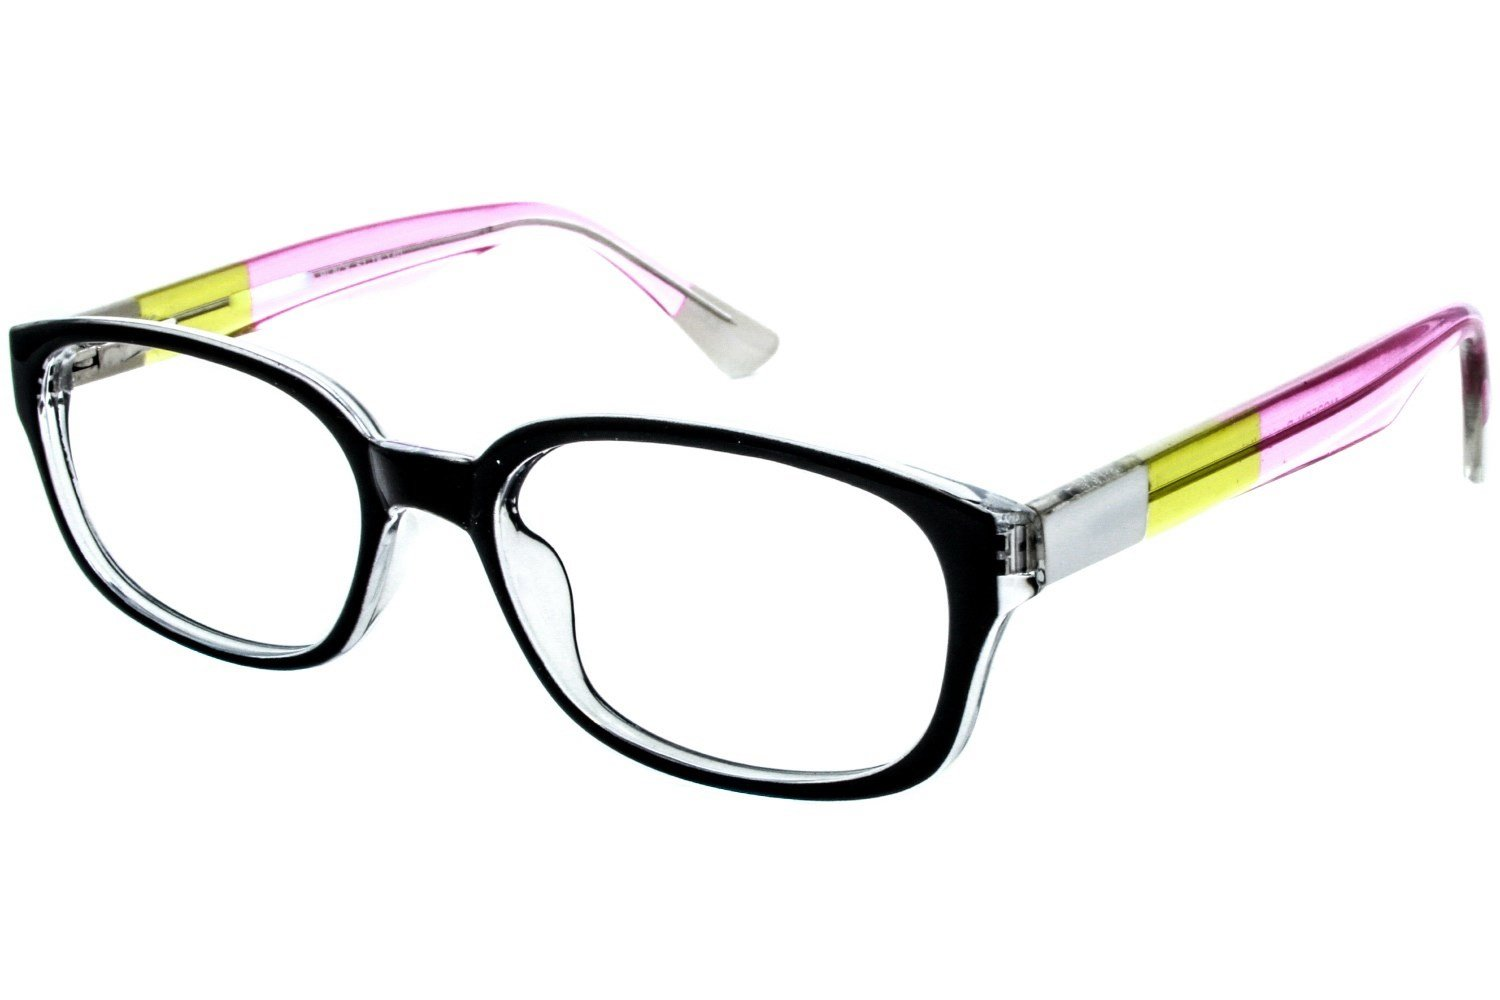 Lunettos Madison Prescription Eyeglasses Frames